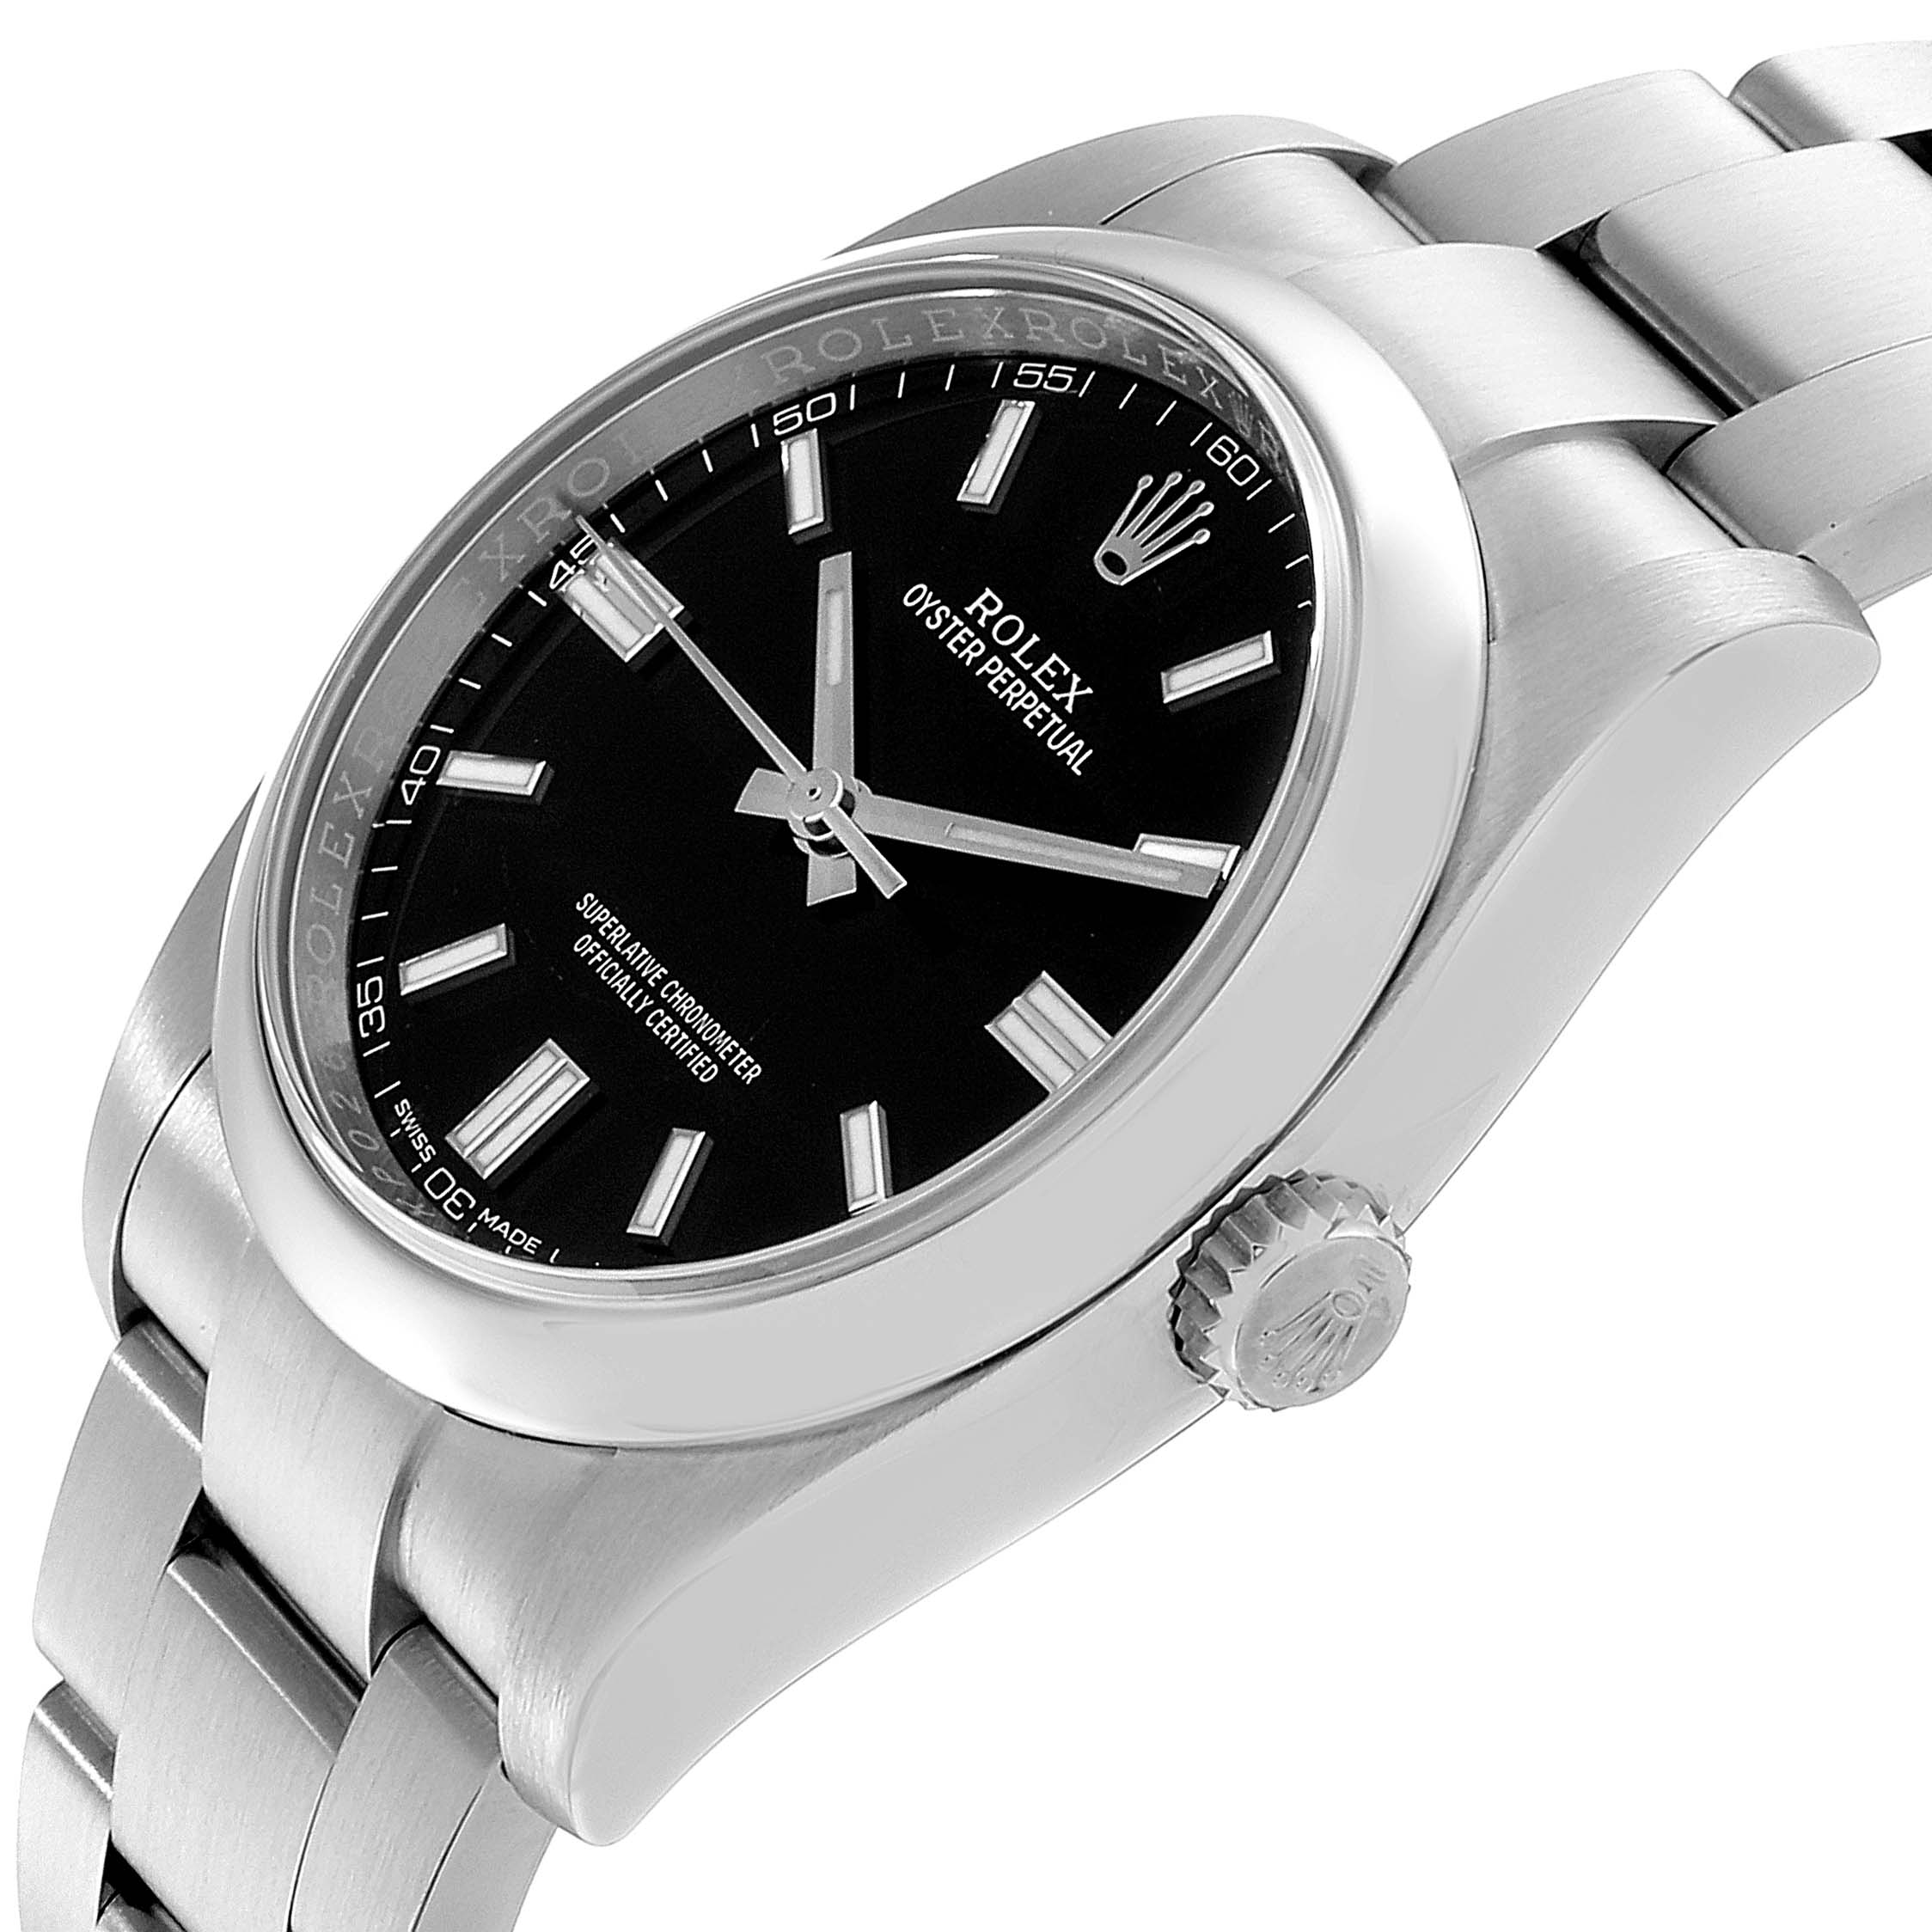 Rolex Oyster Perpetual 36 Black Dial Steel Mens Watch 116000 Box Card SwissWatchExpo